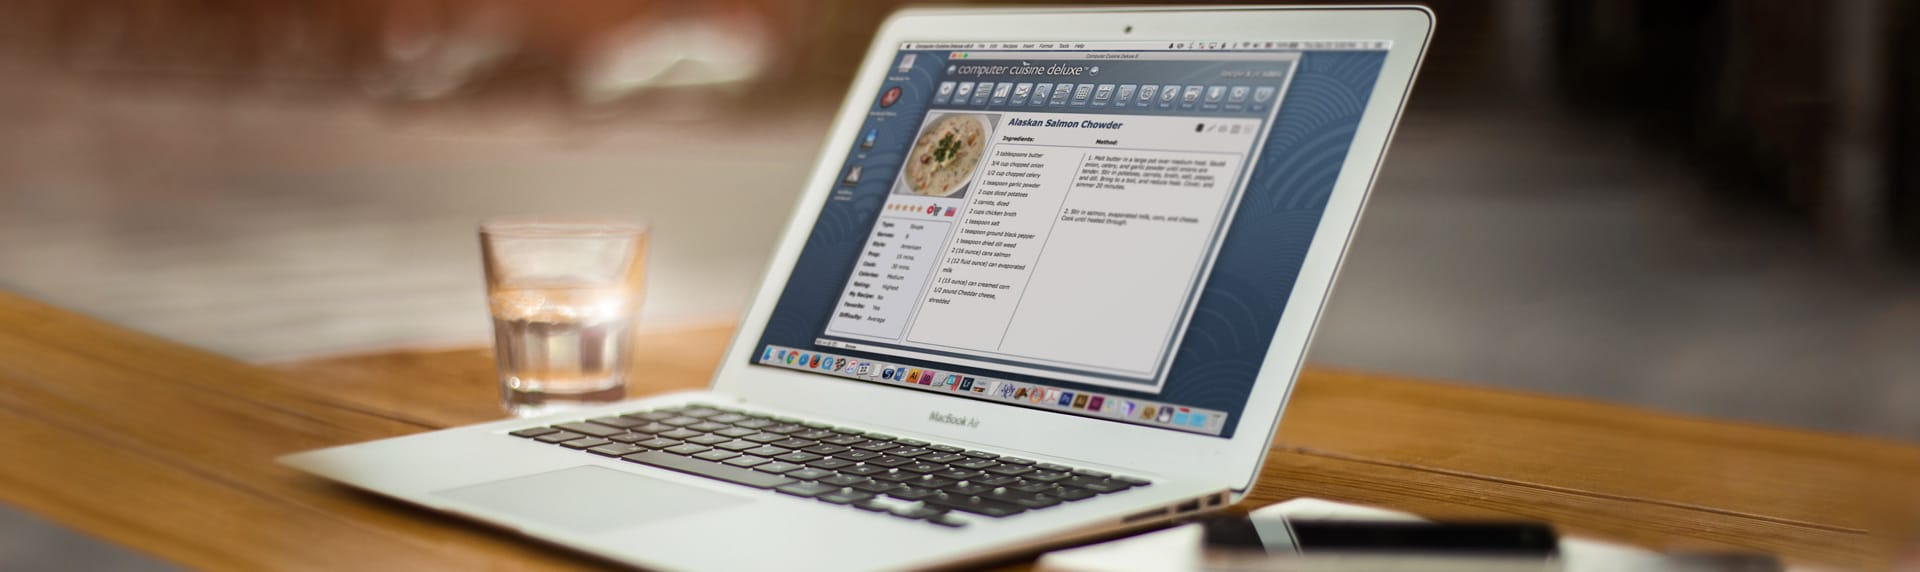 computer cuisine laptop mac recipe software